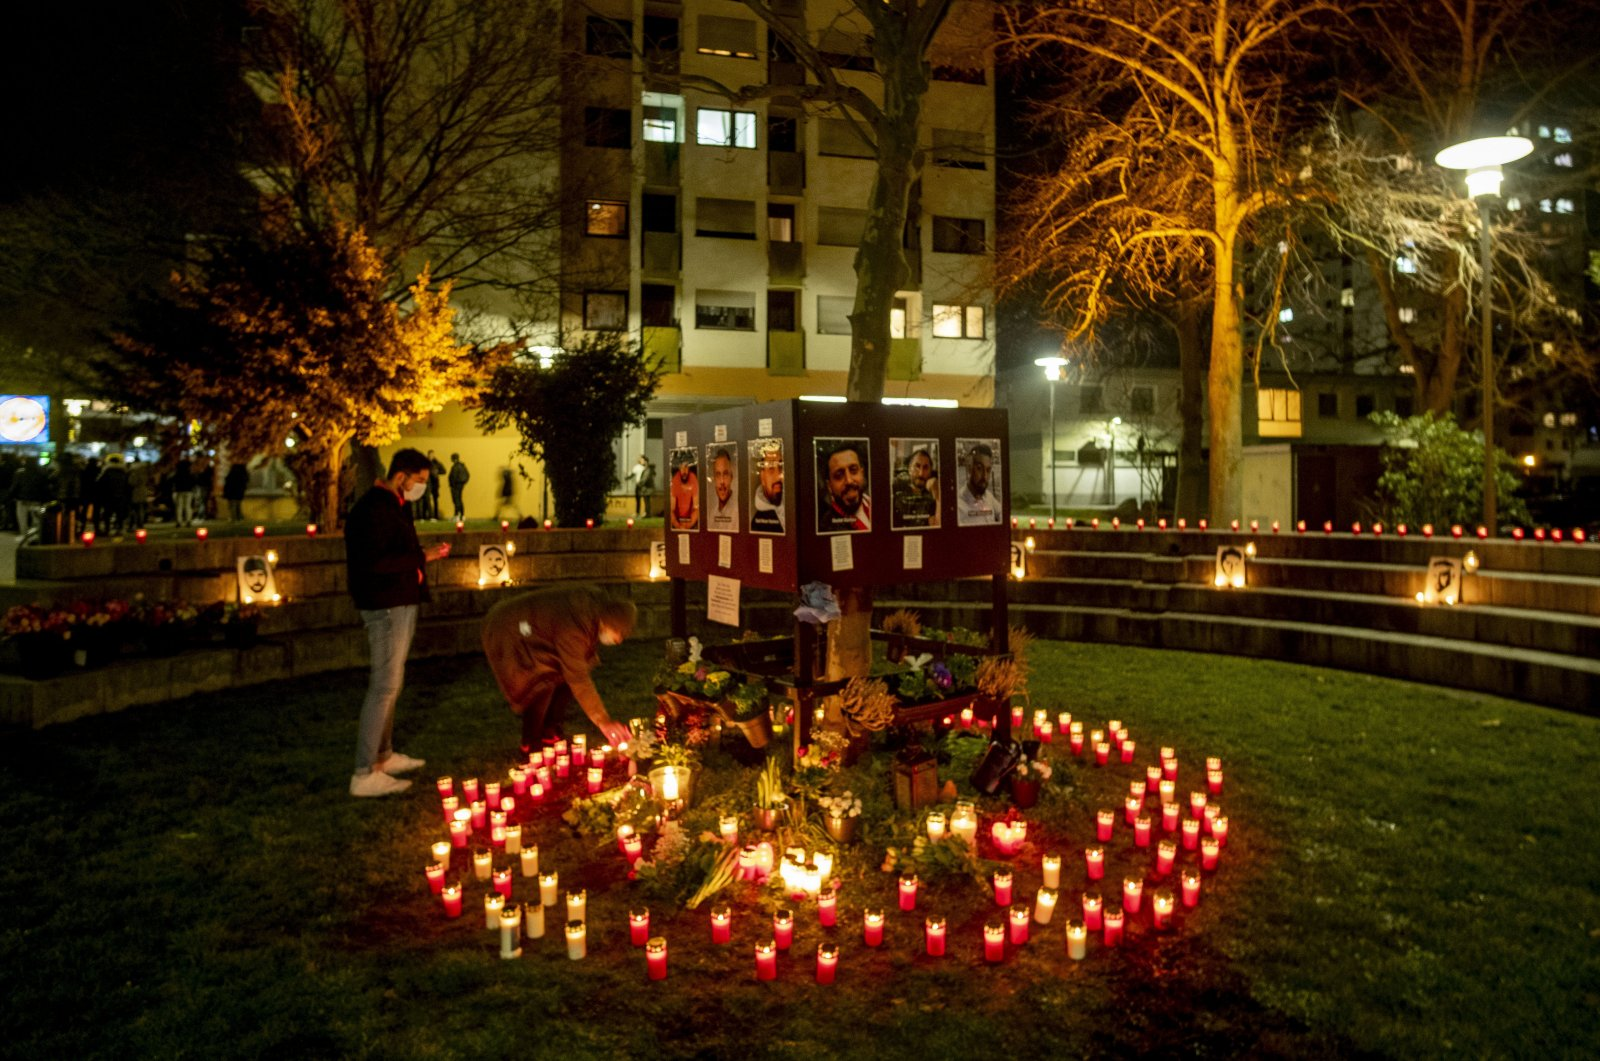 People light candles in front of a kiosk where several were killed in a racist attack one year ago in Hanau, Germany, Feb. 19, 2021. (AP Photo)